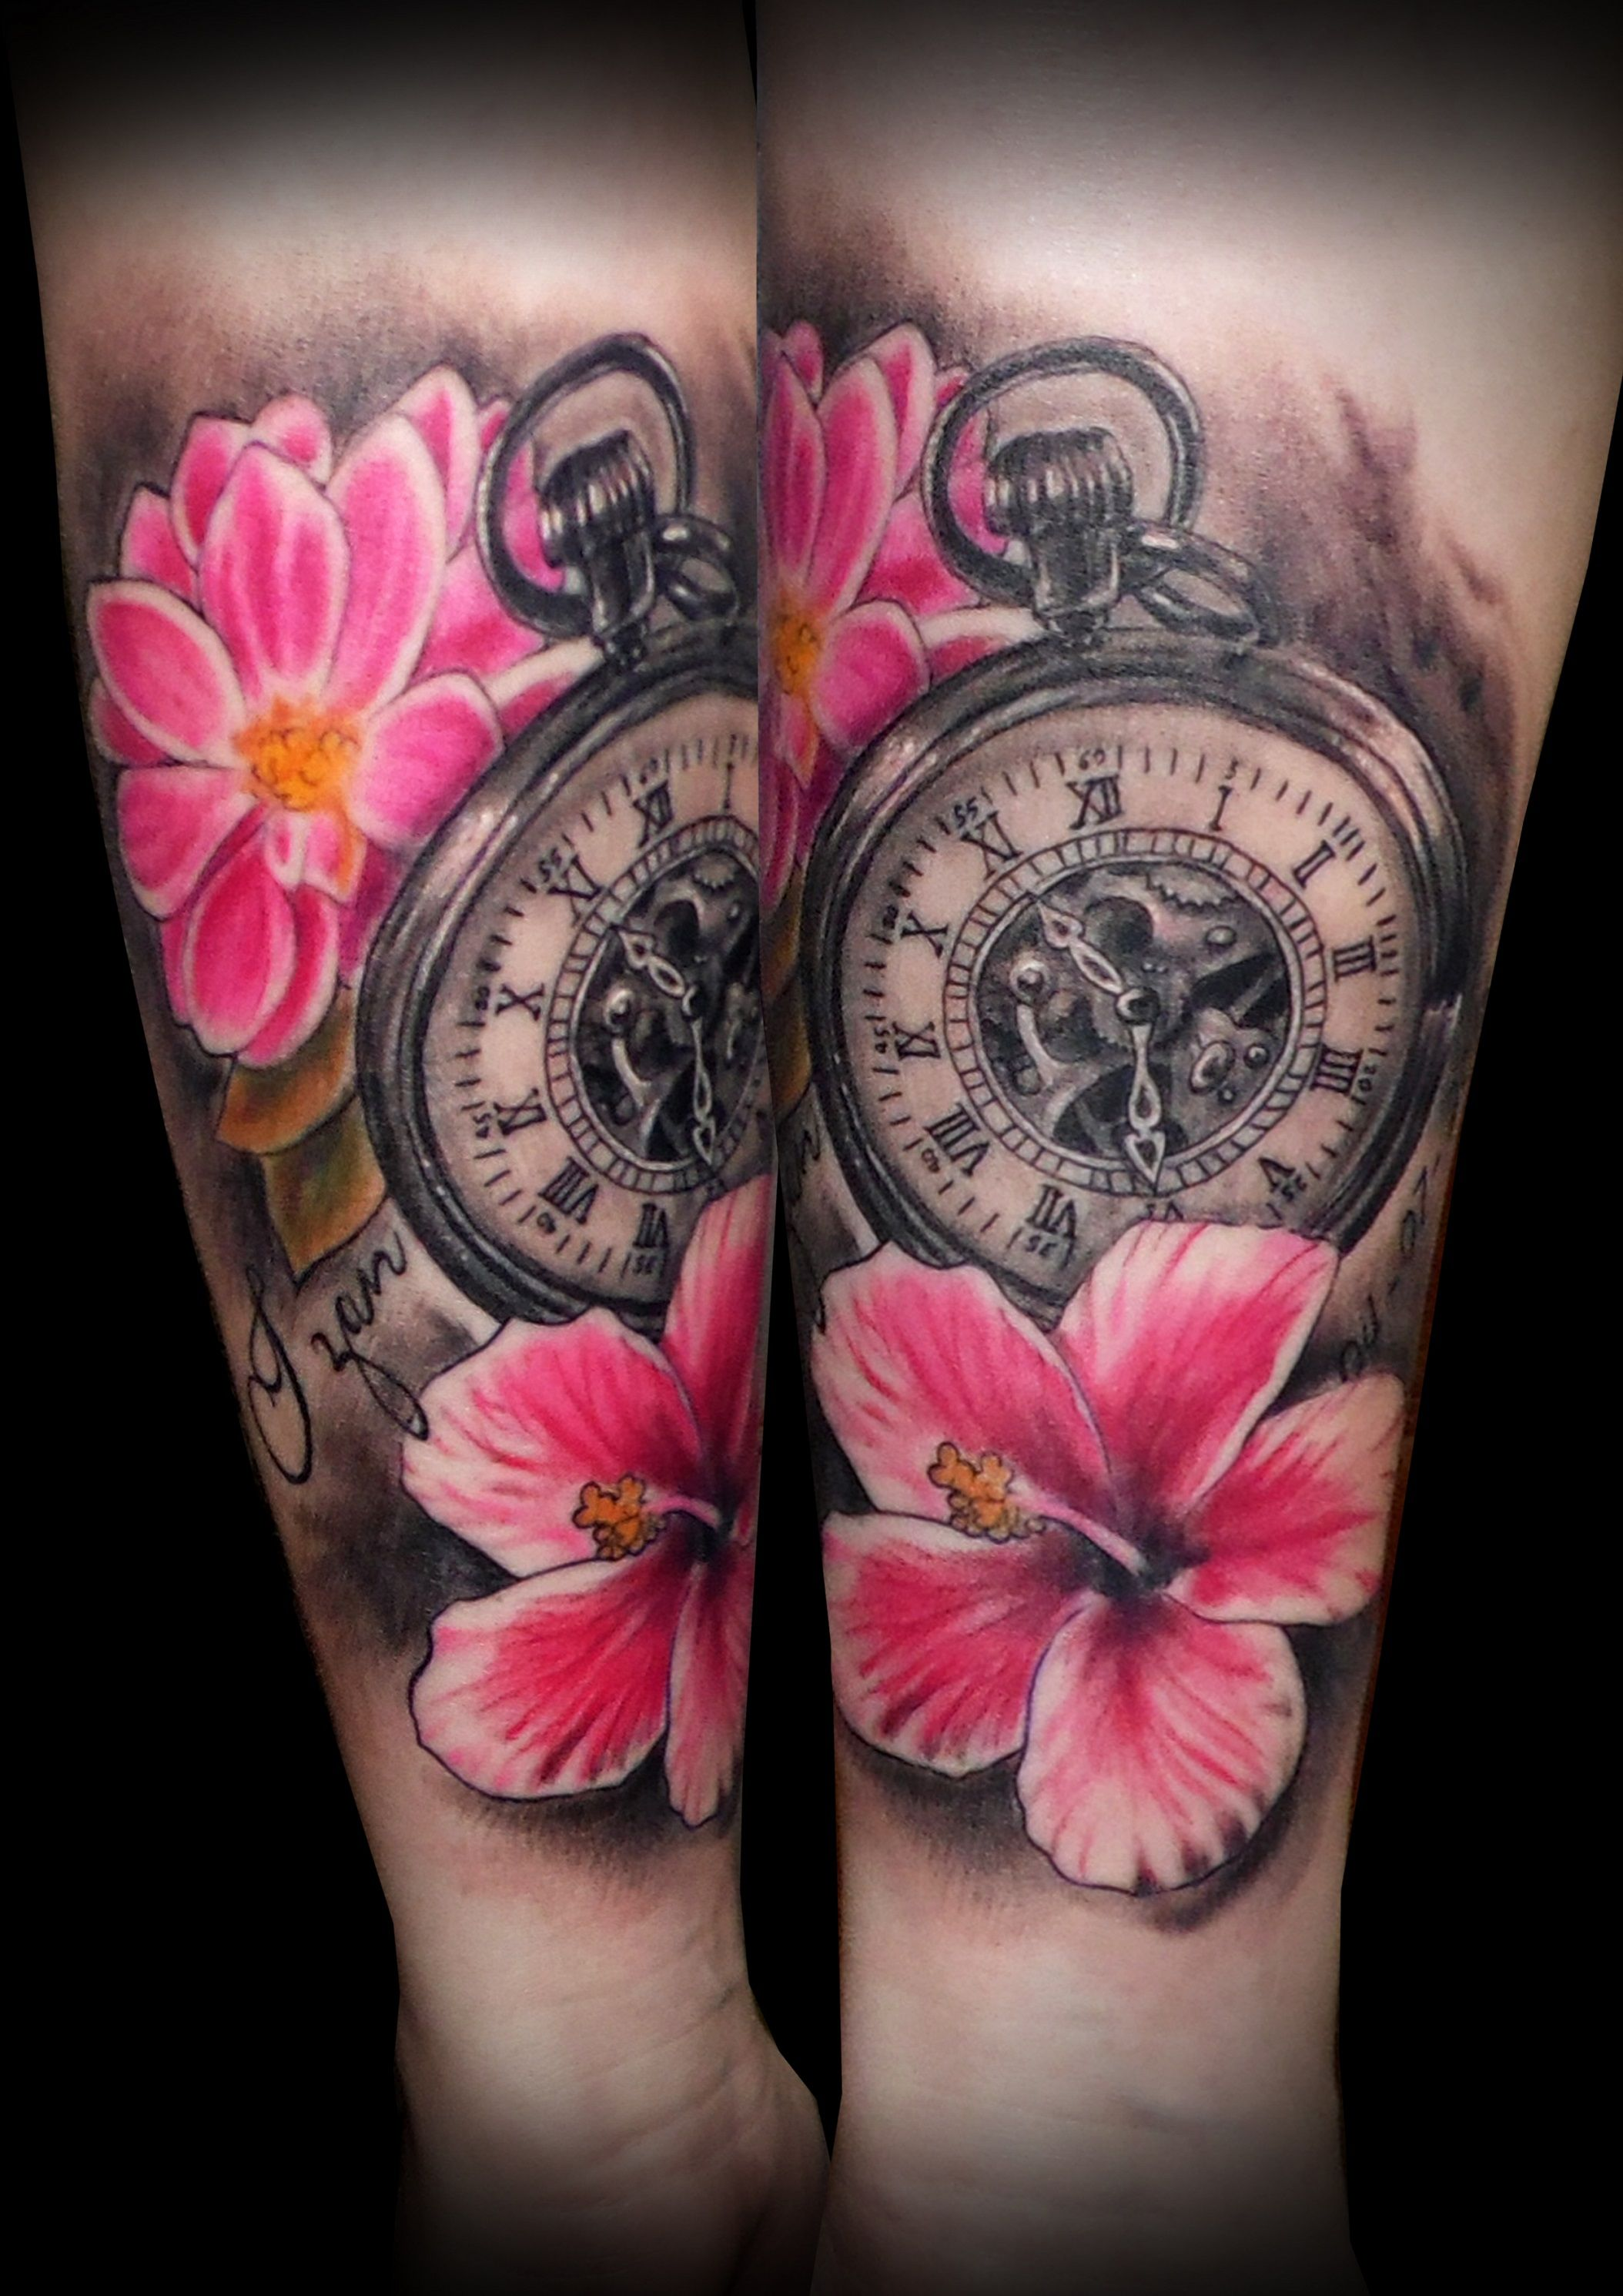 Tatuaje Tattoo Flores Color Reloj Antebrazo 13depicas Ink Love